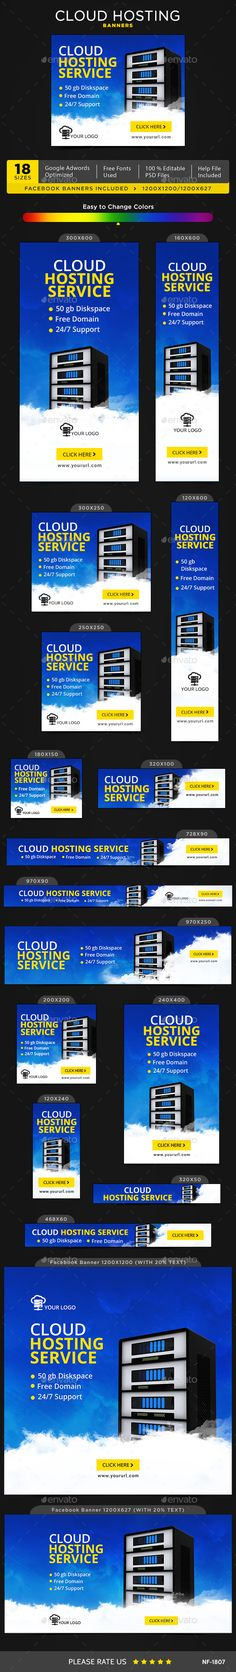 Cloud Hosting Banners - Image Included - #Banners & Ads Web #Elements Download here: https://graphicriver.net/item/cloud-hosting-banners-image-included/20056440?ref=alena994